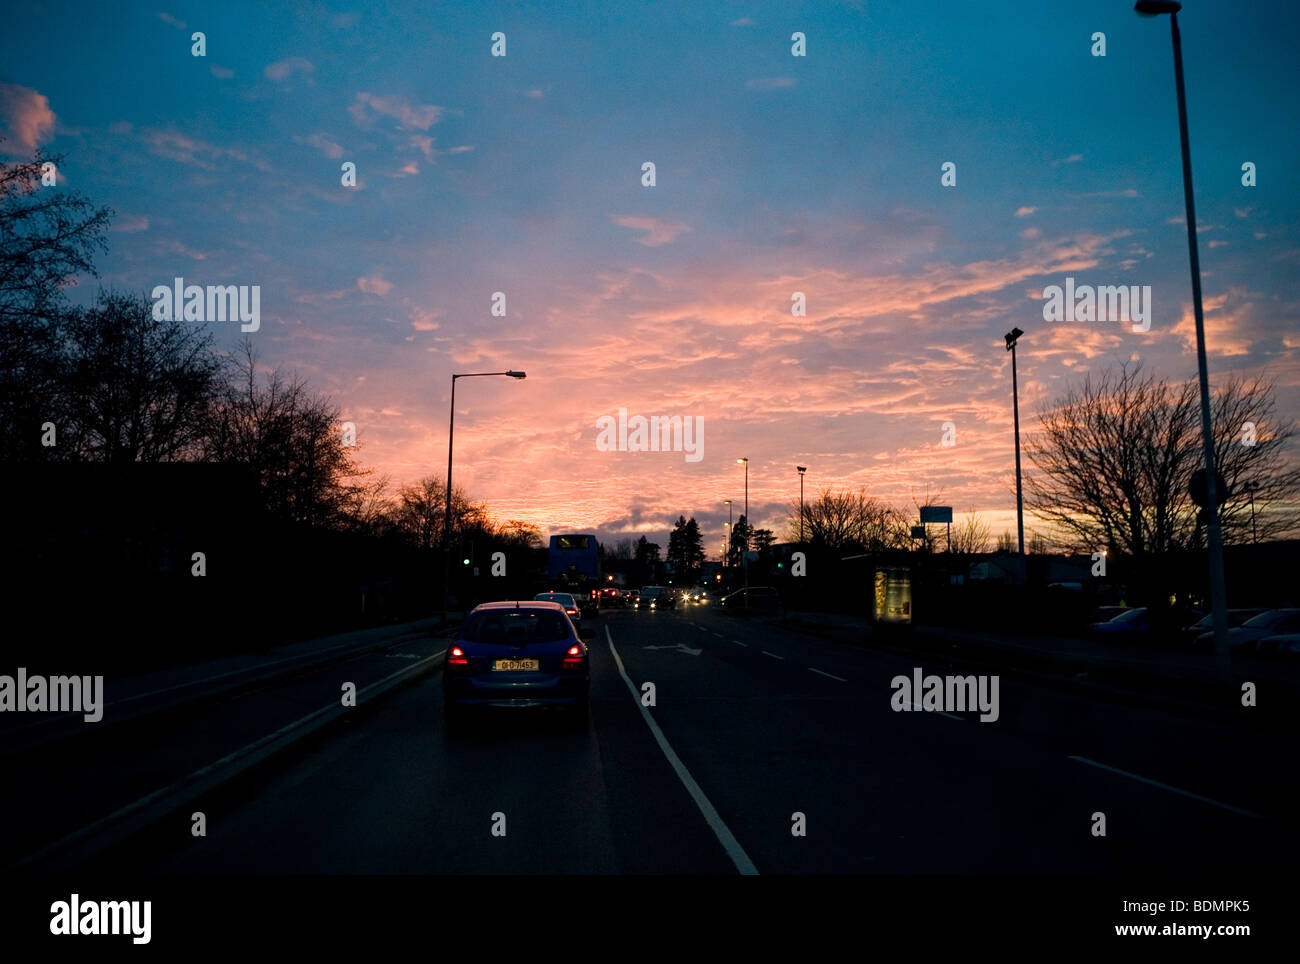 Feb 2009 Sunset early evening in Dundrum Co. Dublin Ireland - Stock Image